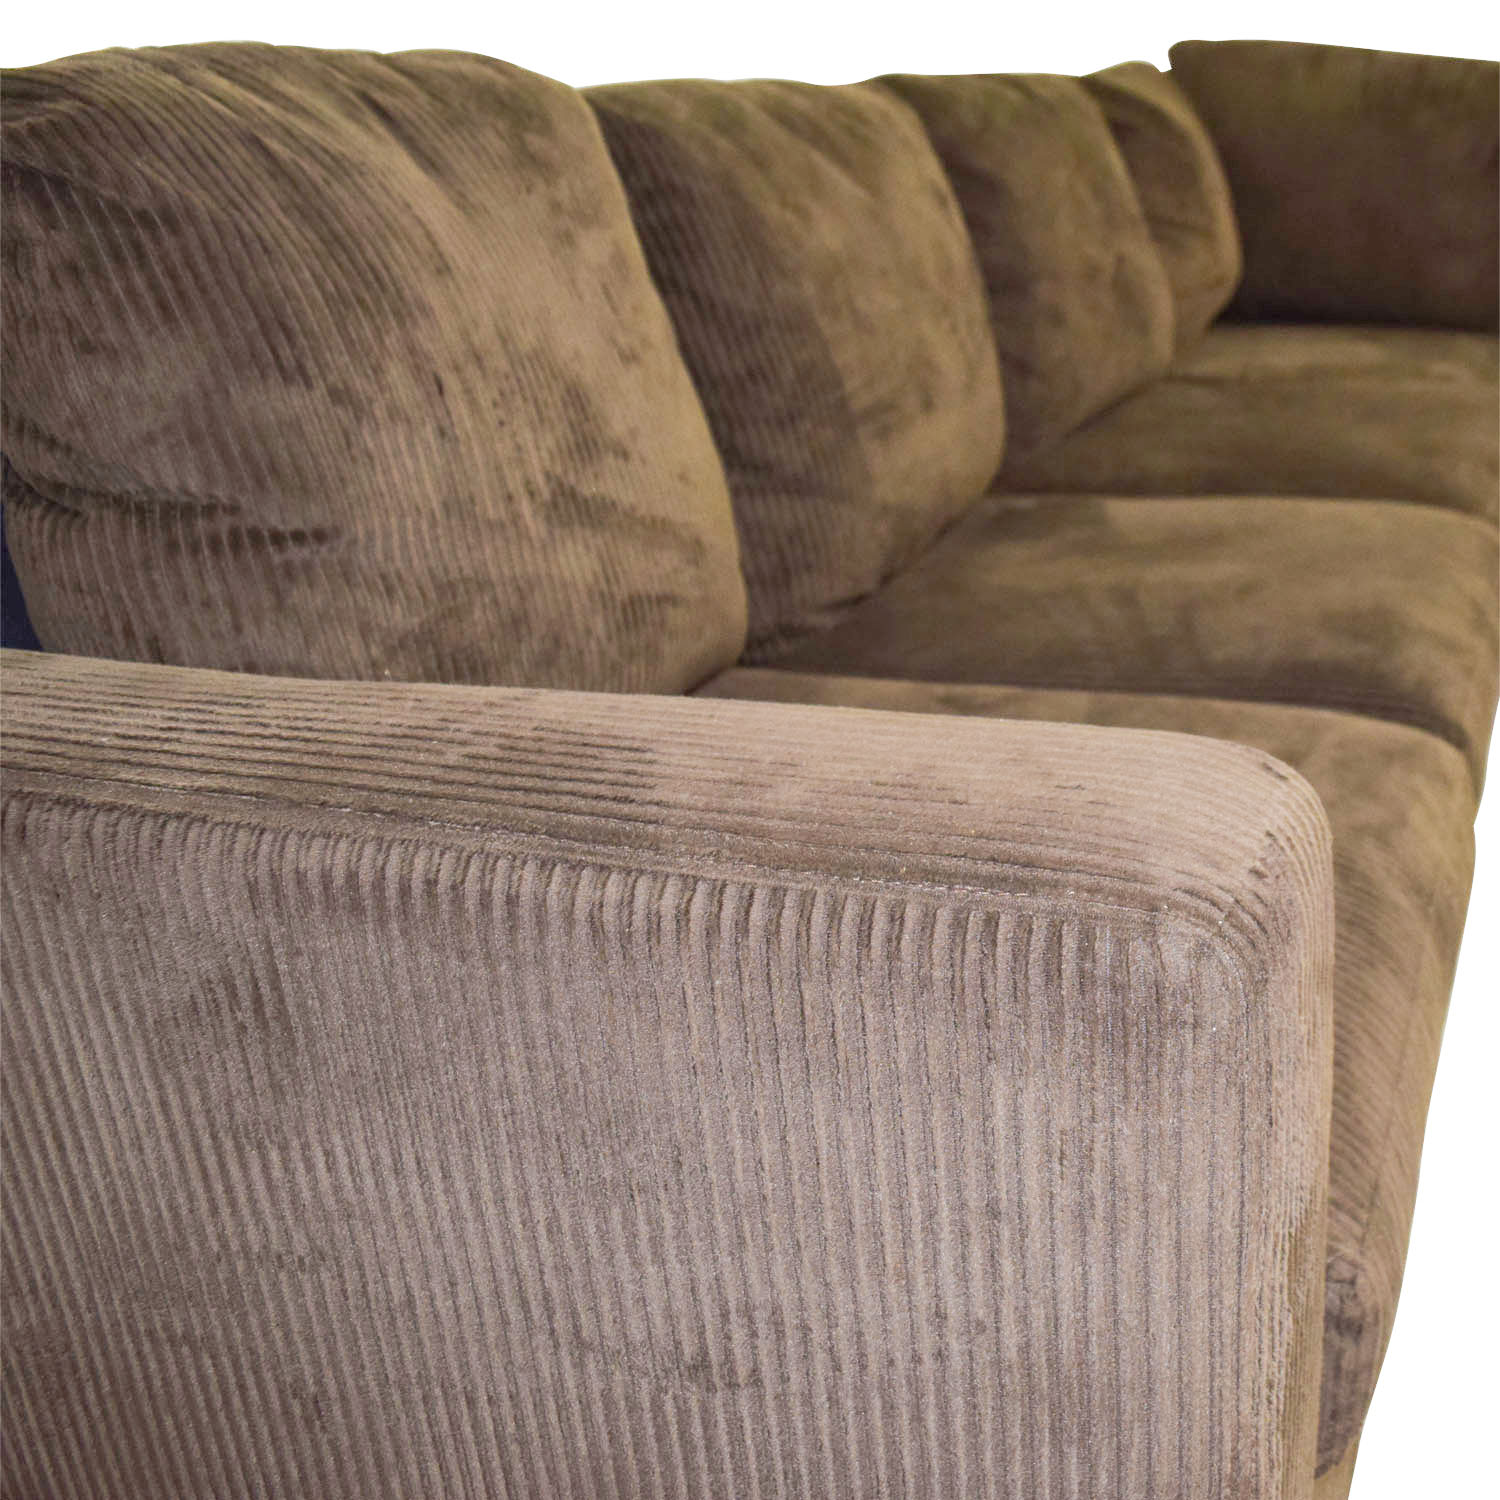 Brown Corduroy Couches